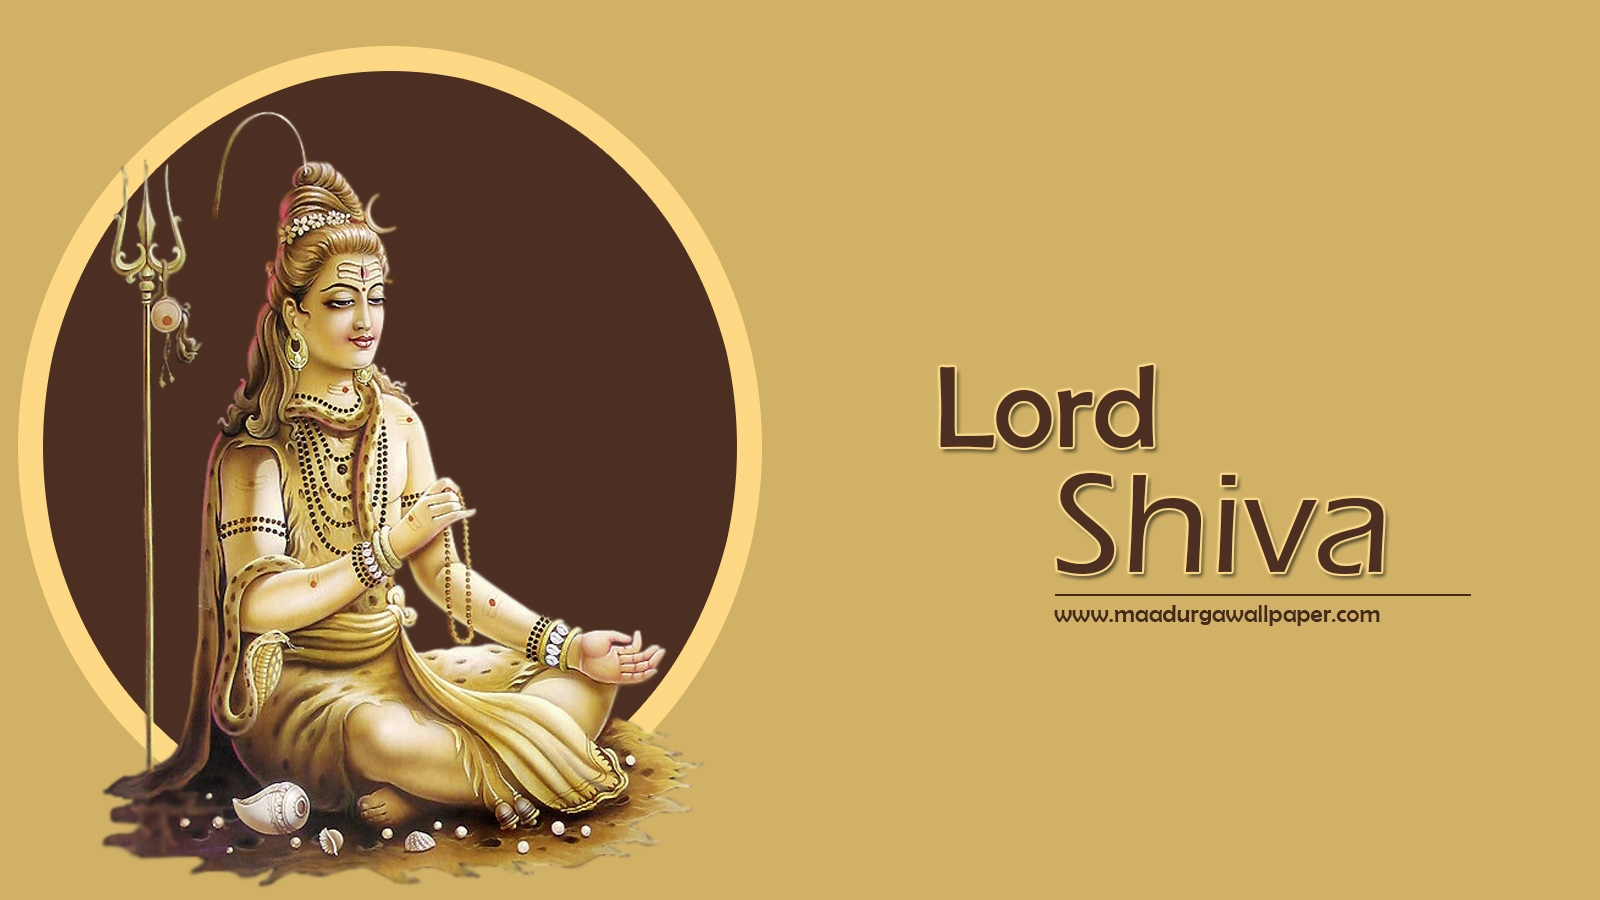 lord shiva wallpapers high resolution for pc 14+ - dzbc